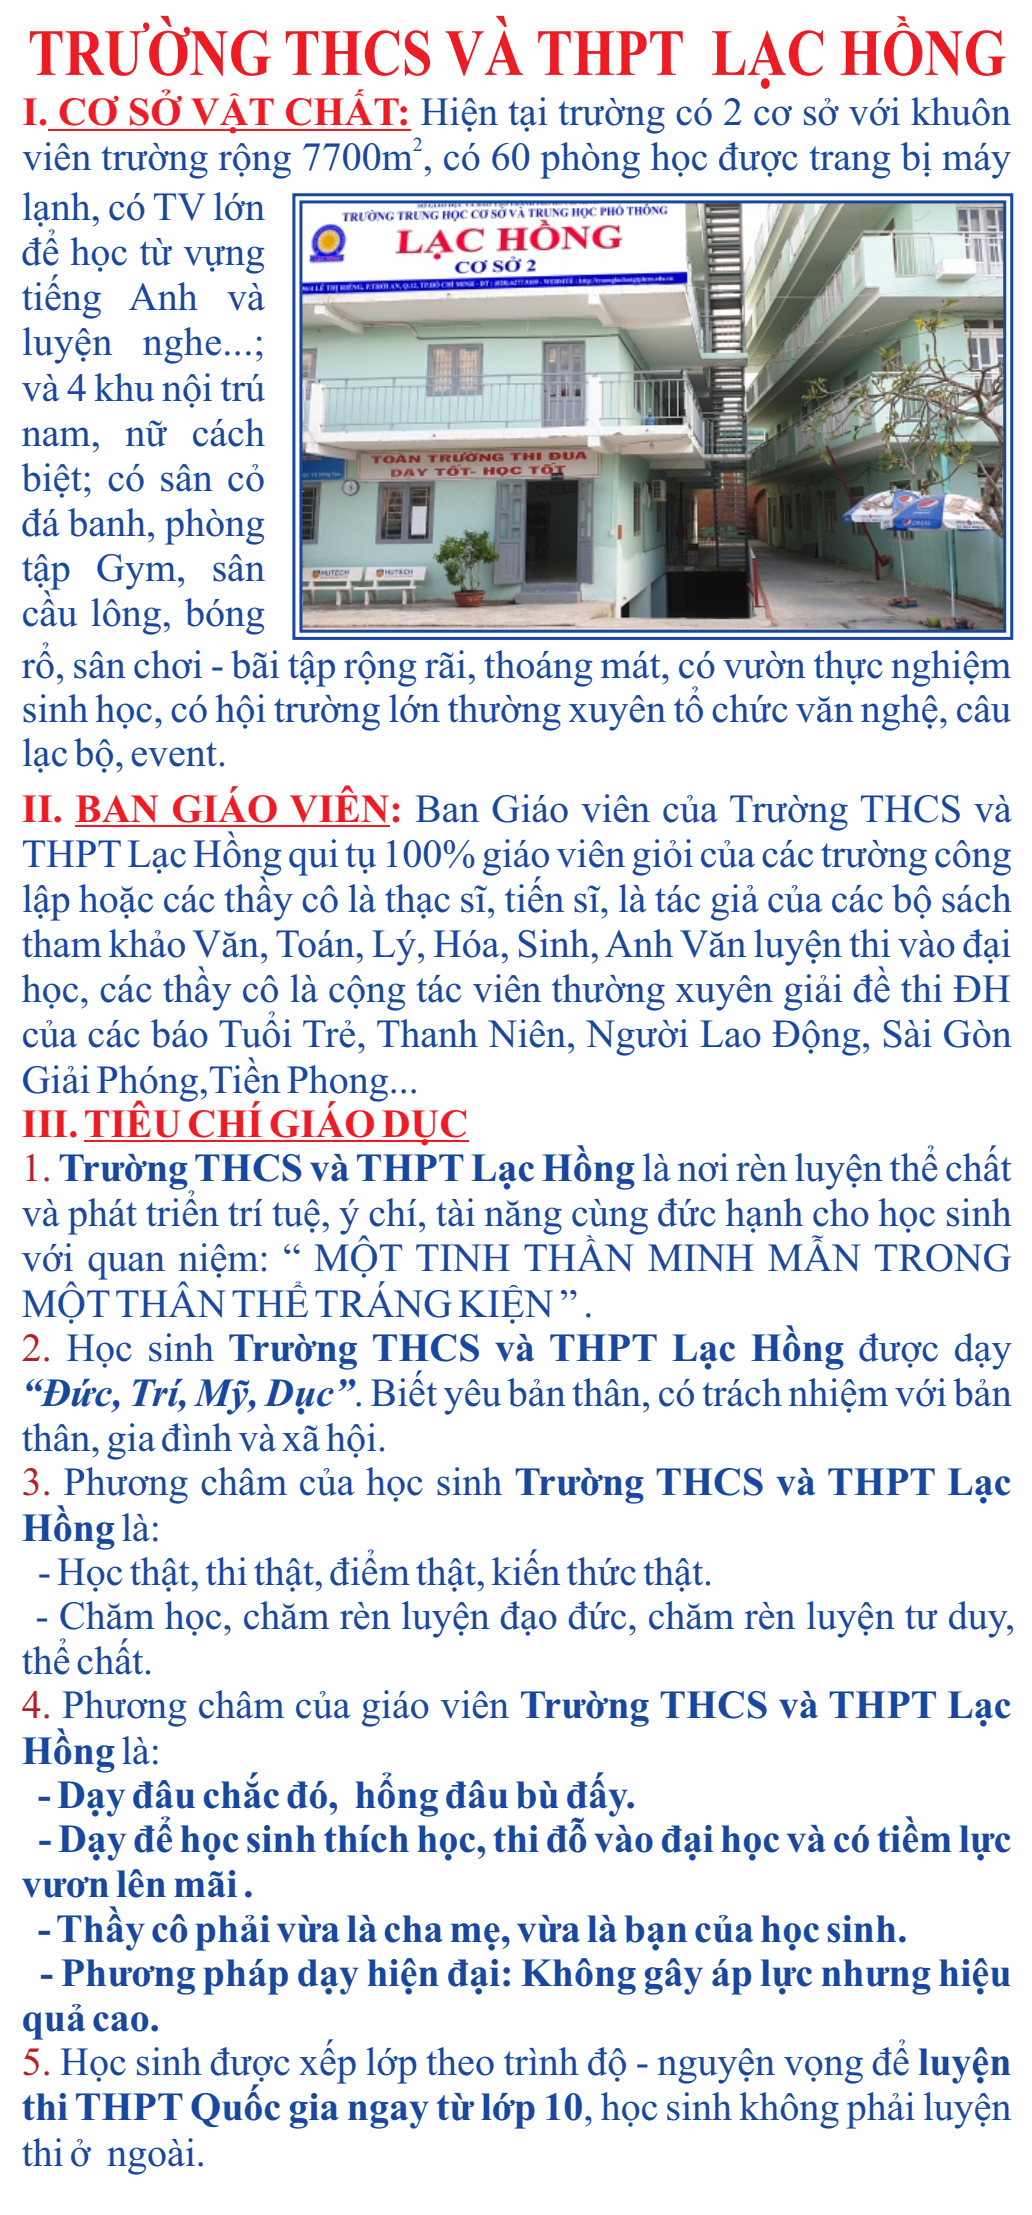 http://truonglachongtphcm.edu.vn/imgzoom/16184_t2.png